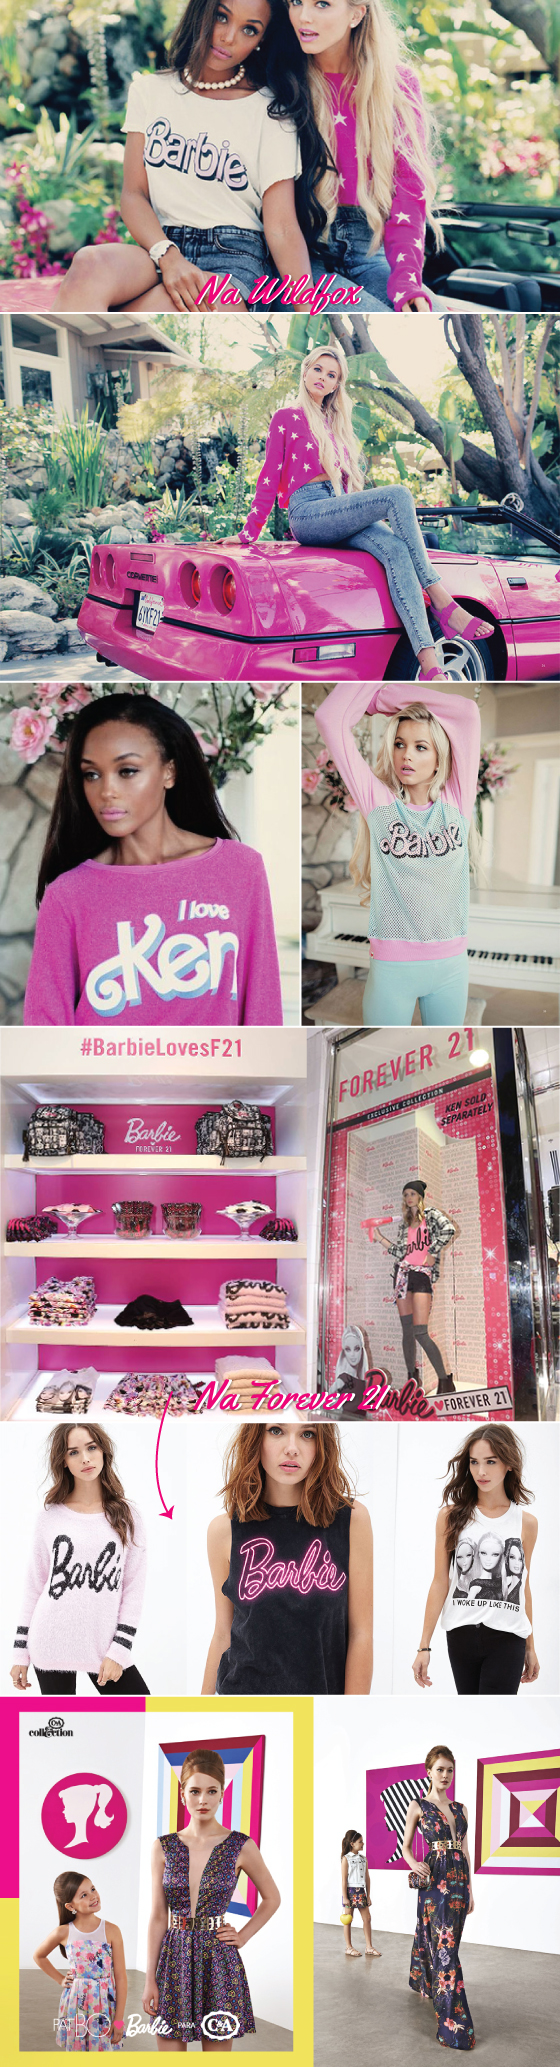 barbie-fever-moschino-desfile-mfw-roupa-fashion-tendencia-wildfox-forever-21-pat-bo-c&a